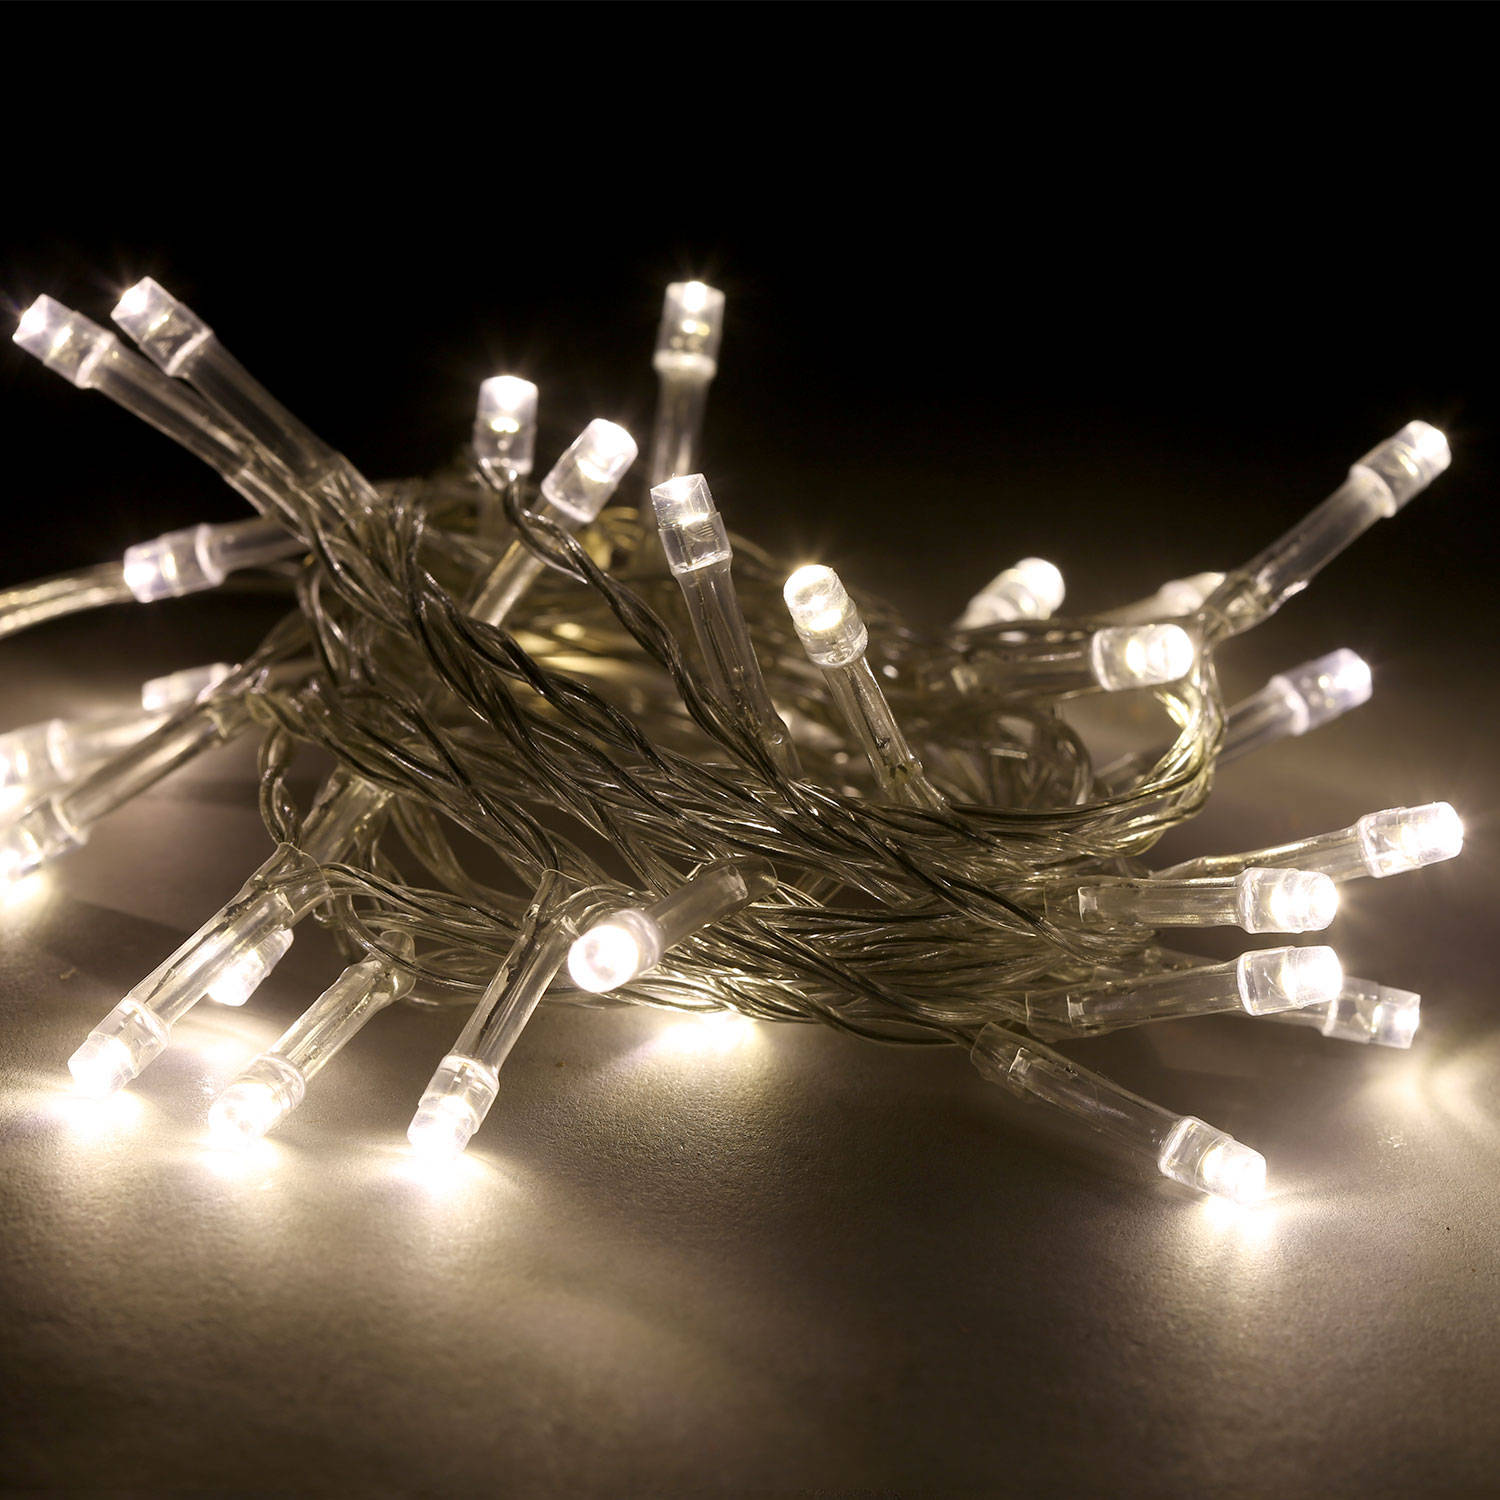 String Lights Guirlande Electrique : Lights.com String Lights Battery String Lights Warm-White LED Battery-Powered String ...